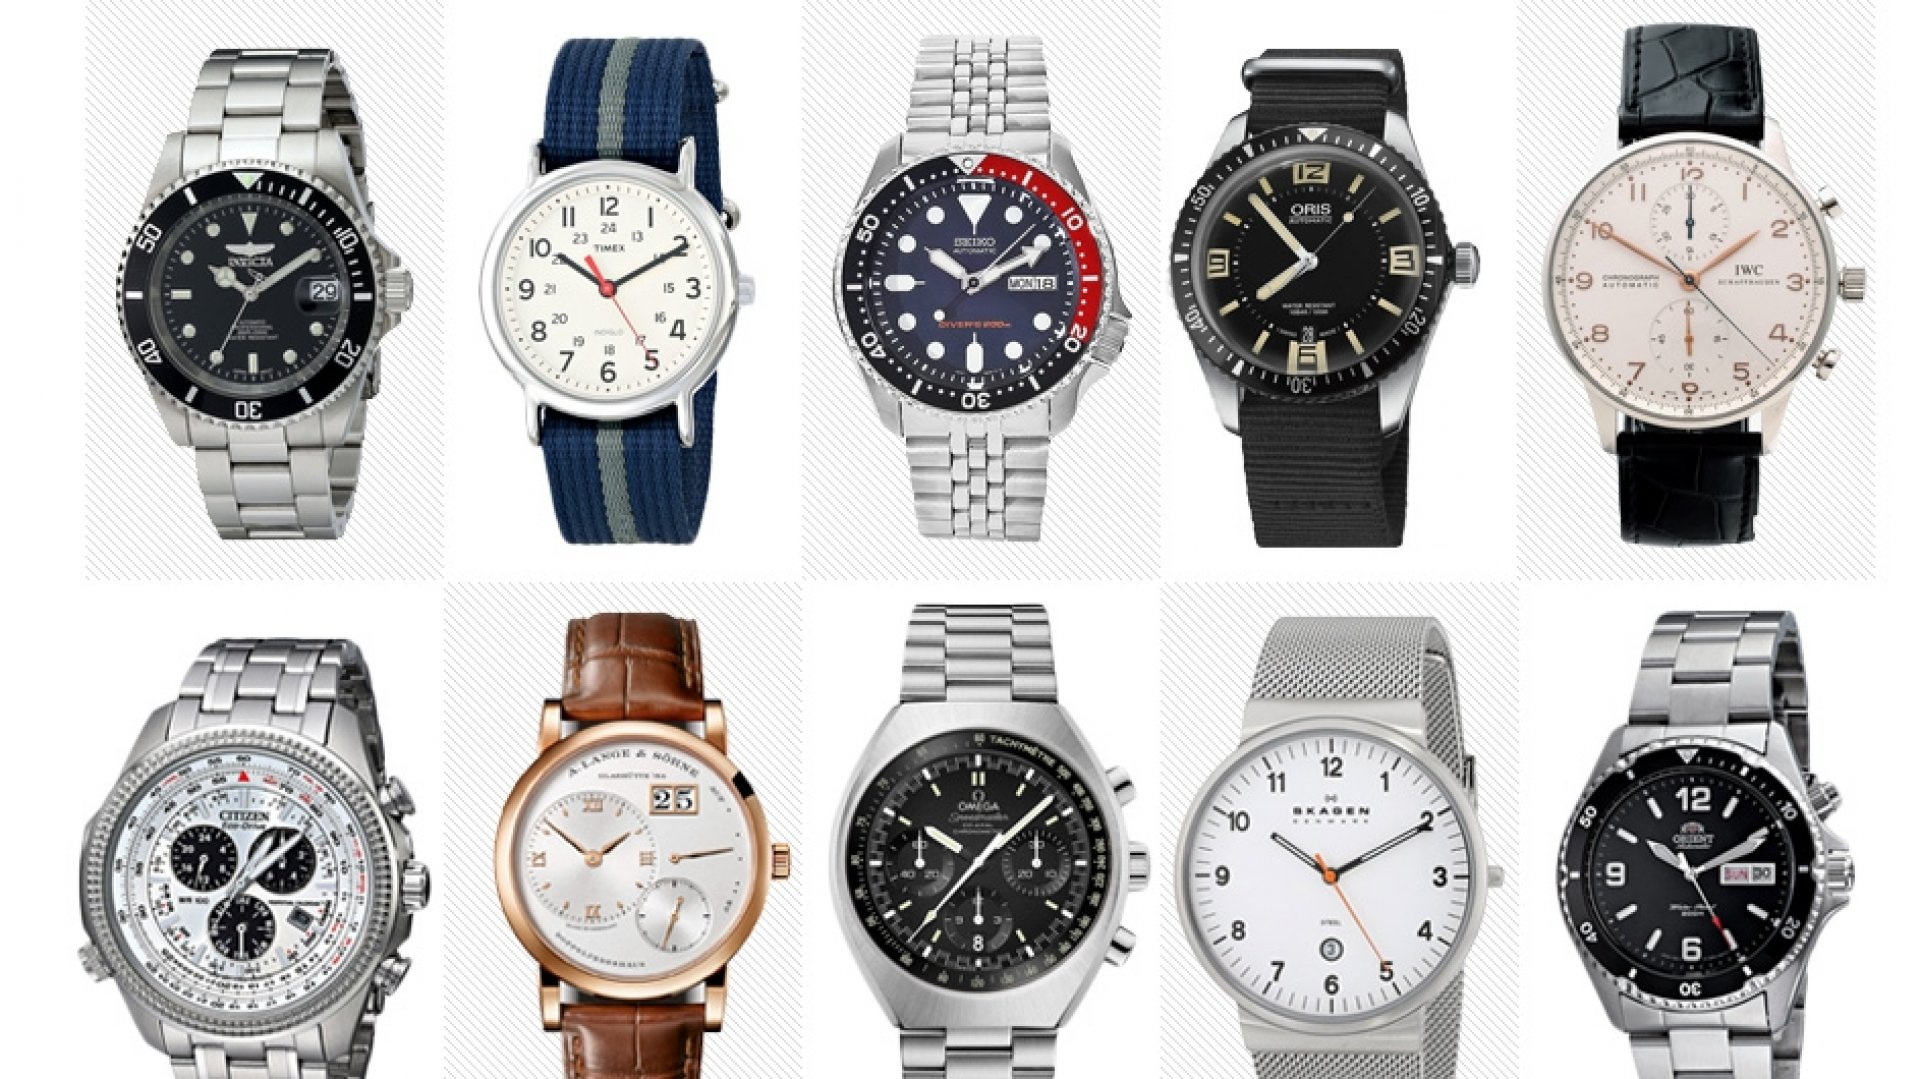 wrist watch brands - 943×578